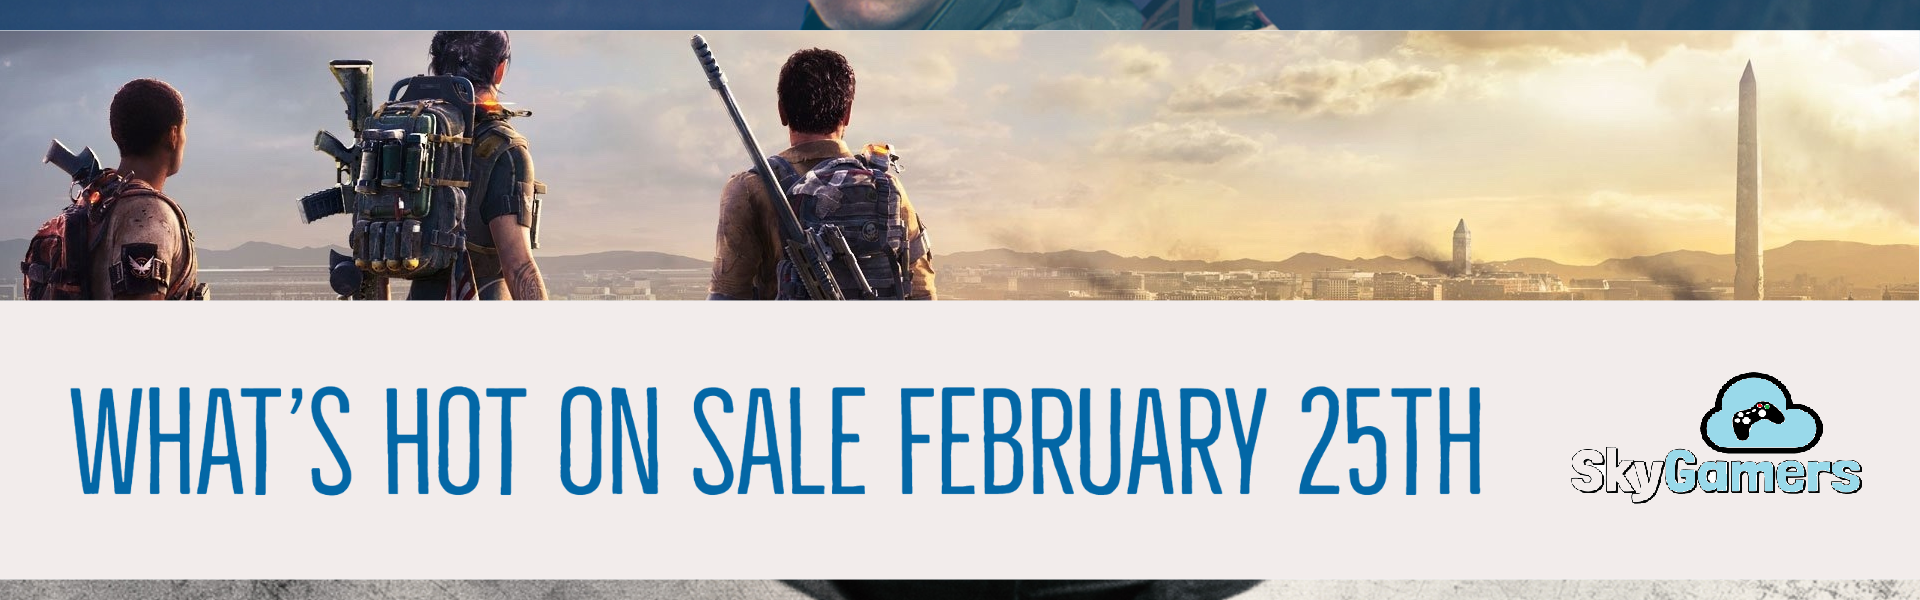 What's Hot on Sale February 25th